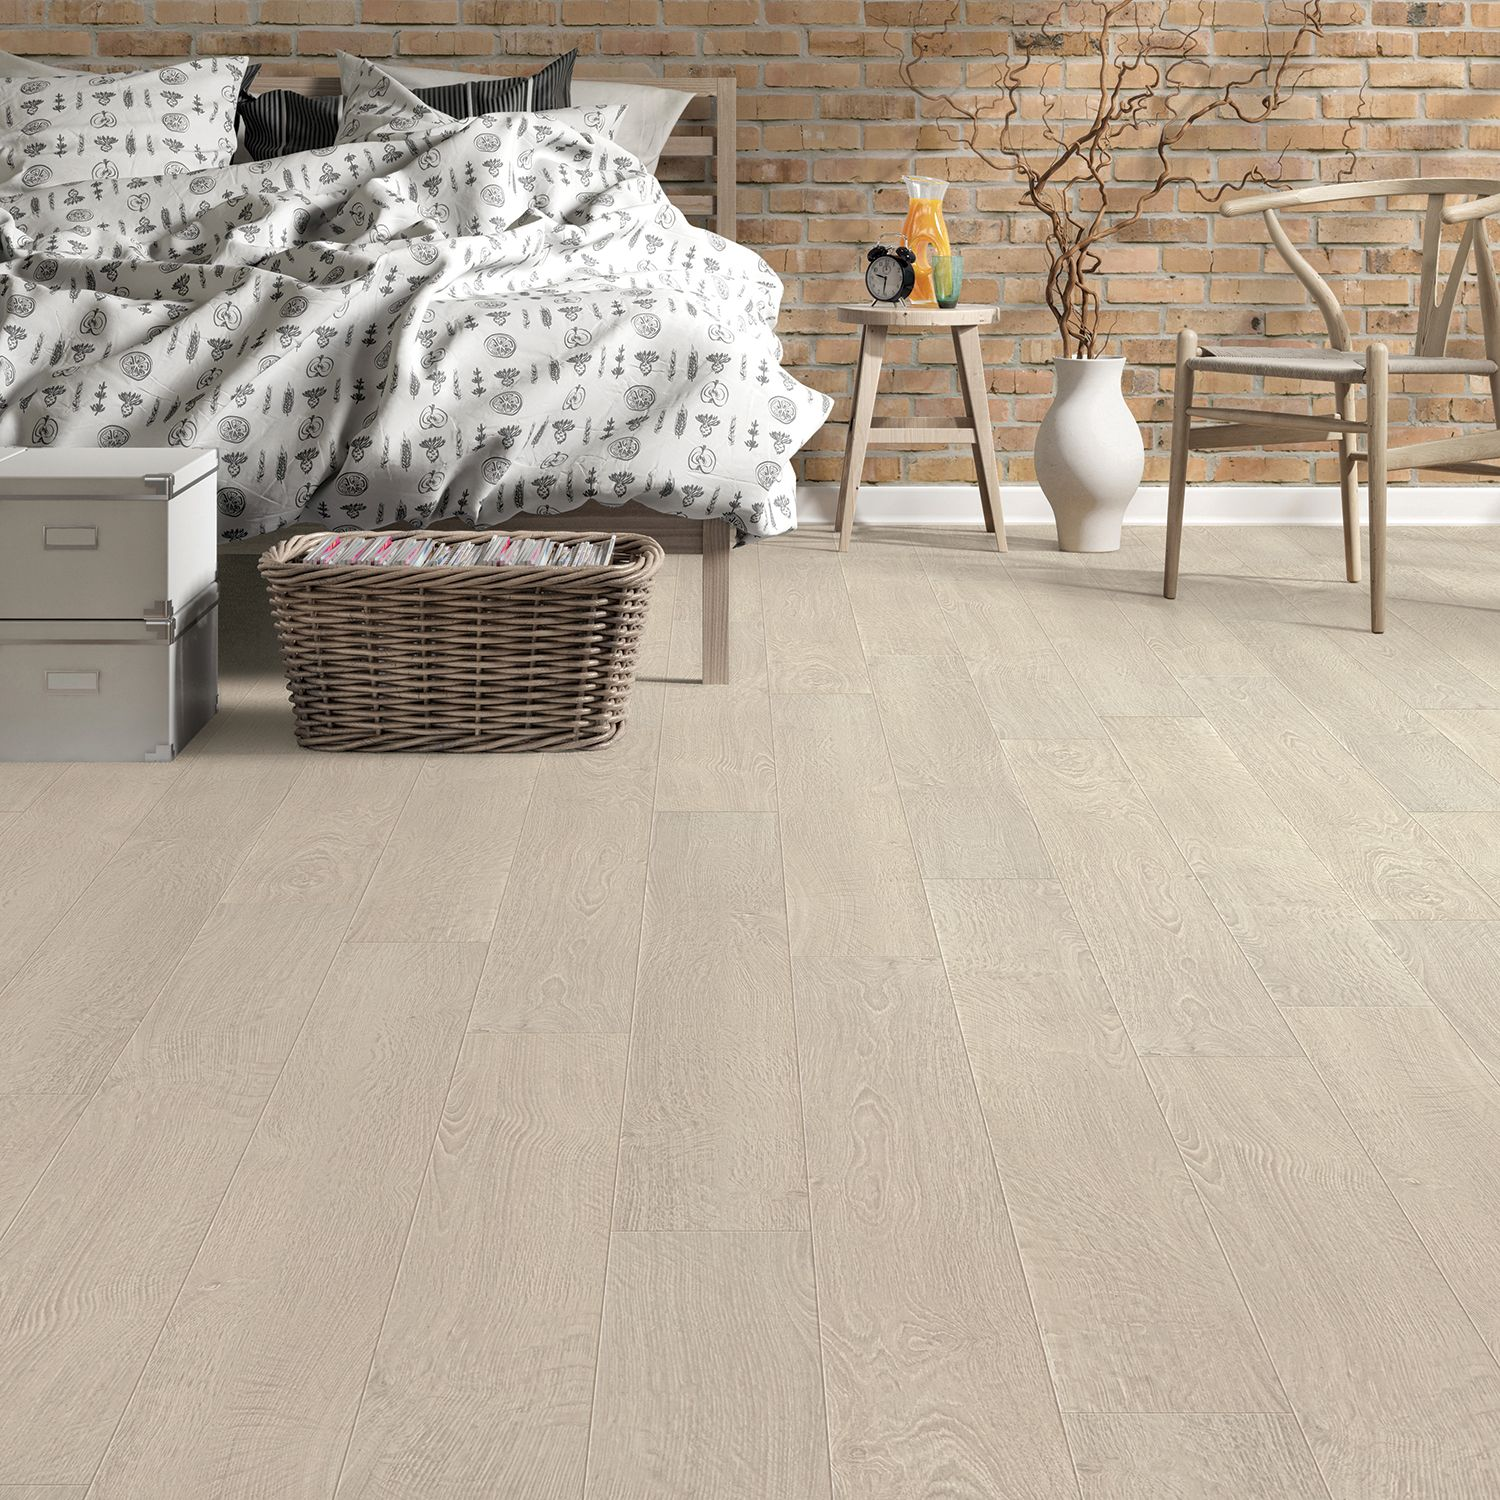 Stanley Park Kraus Laminate Flooring Colour North Shore Laminate Flooring Krausflooring Mikescarpetandfloo With Images Flooring Store Indoor Air Quality Air Quality